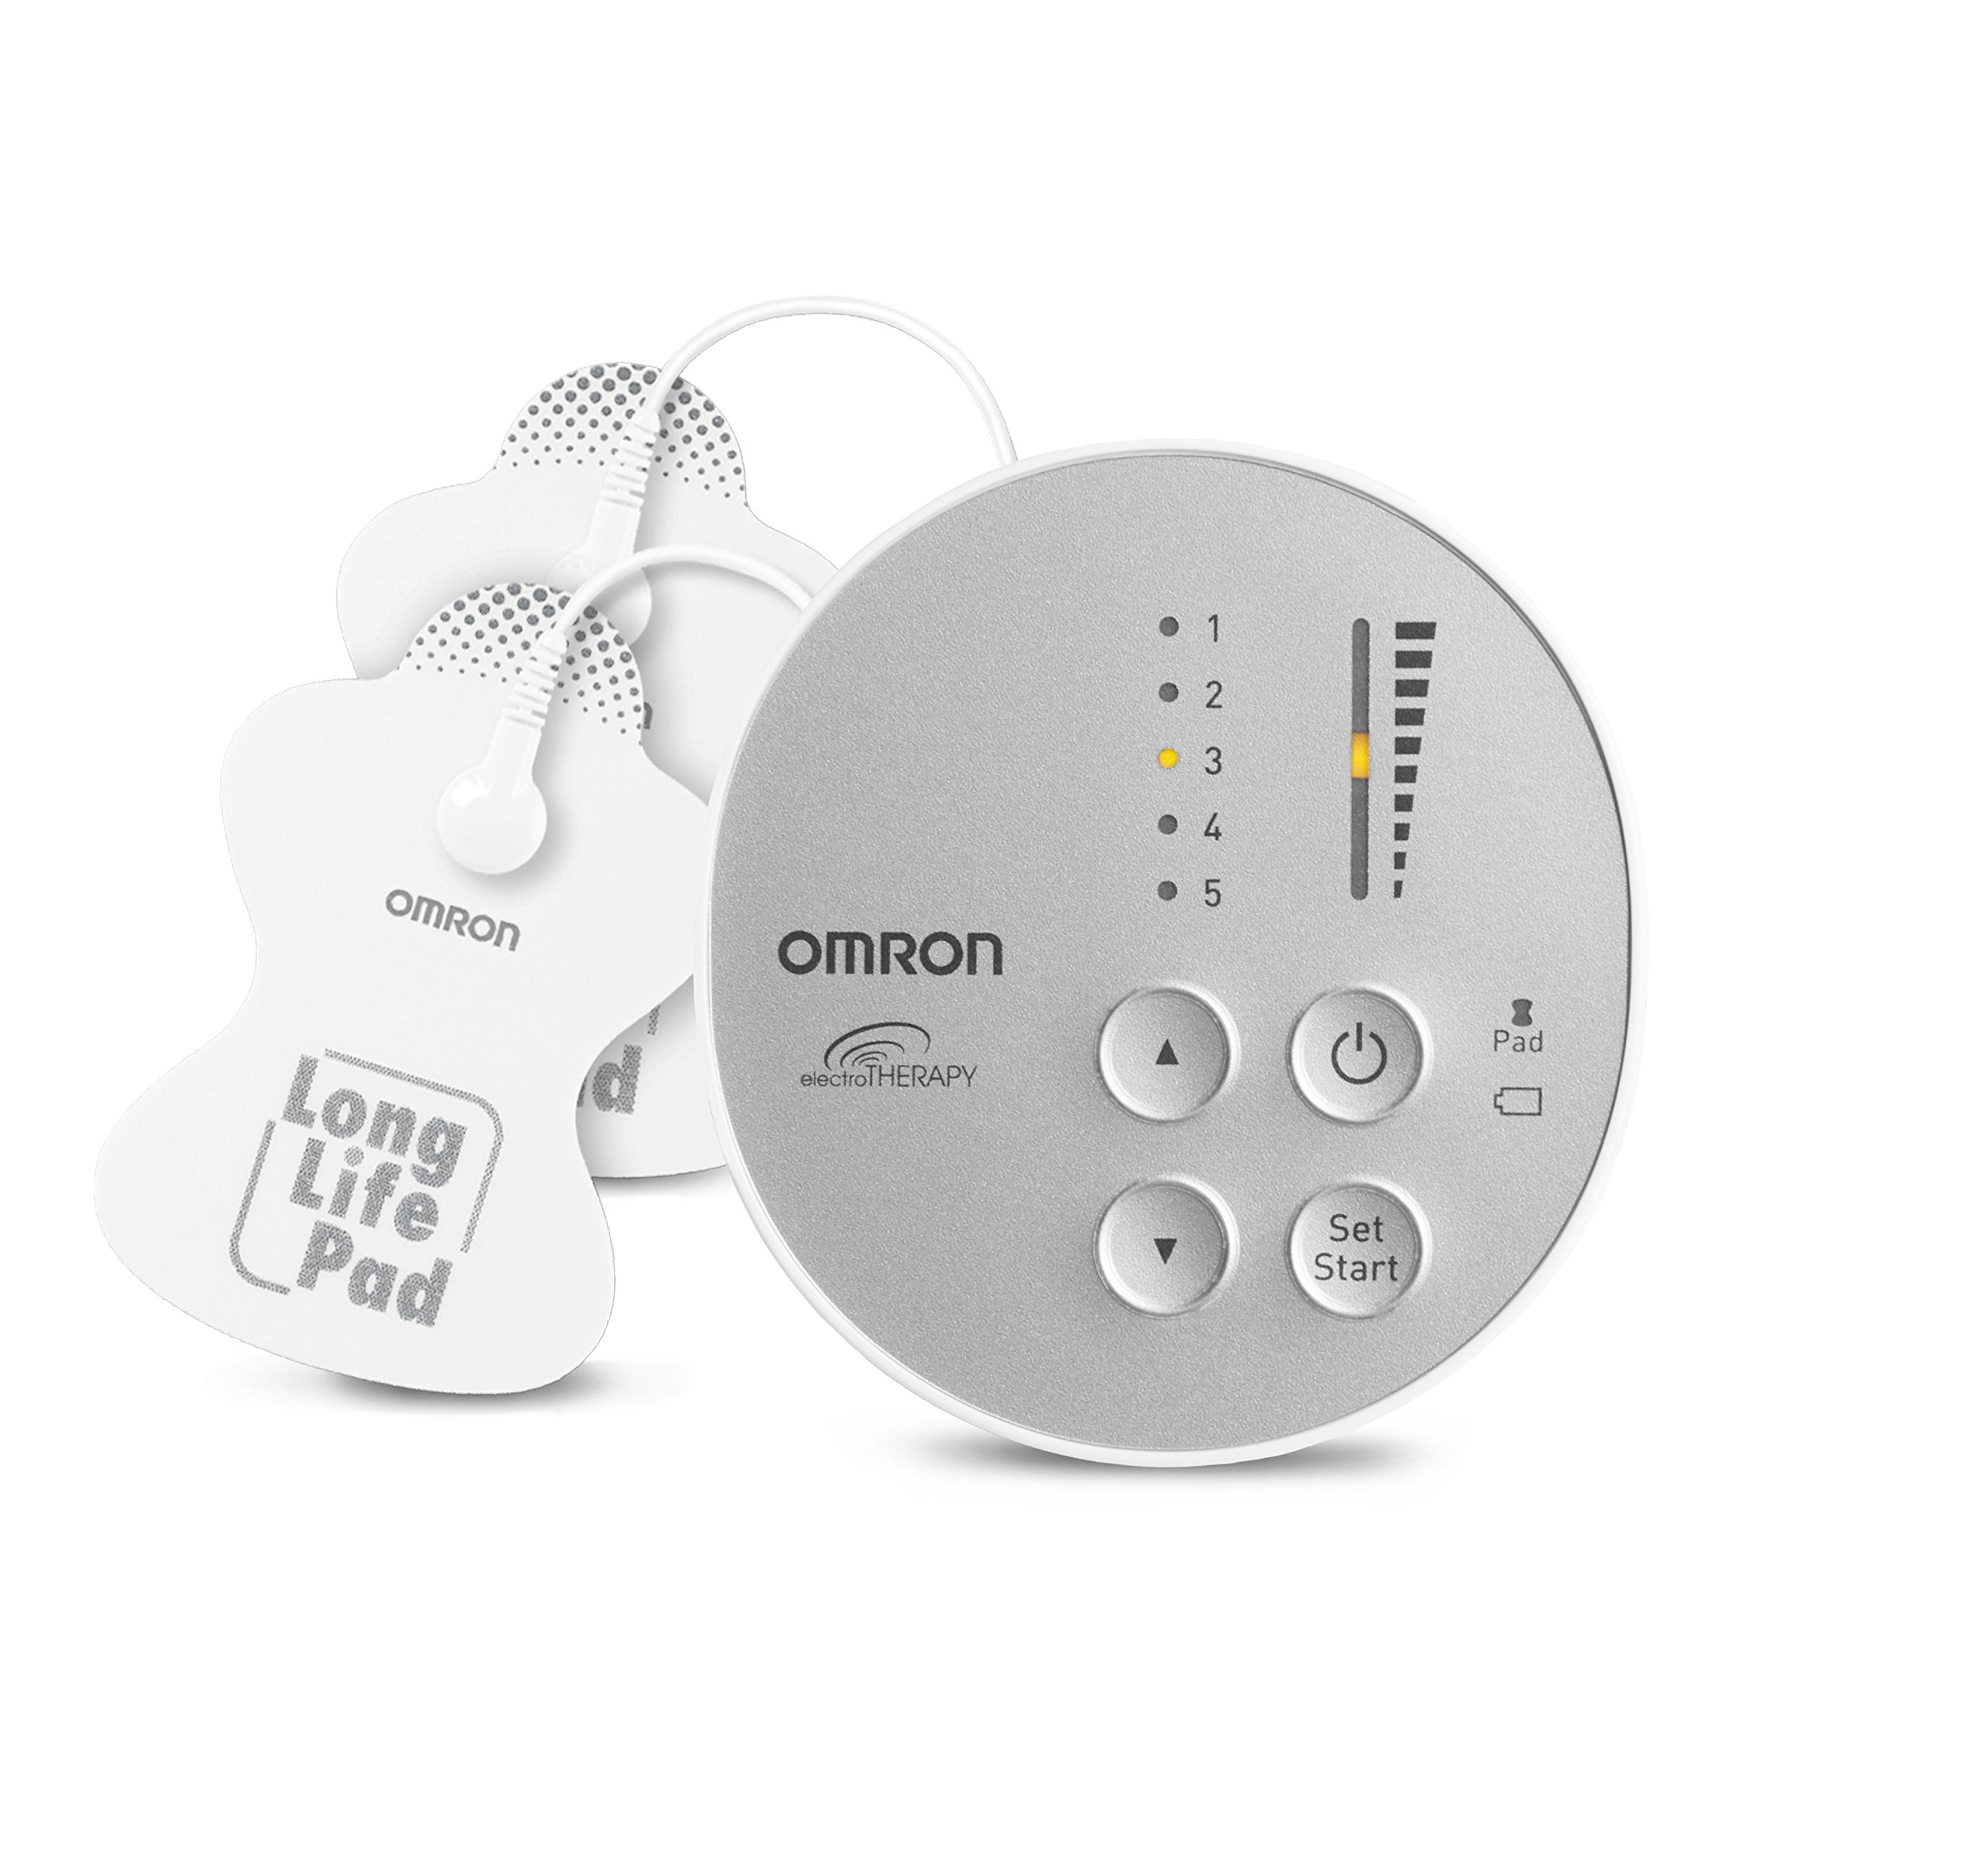 OMRON Pocket Pain Pro TENS Unit Muscle Stimulator, Simulated Massage Therapy for Lower Back, Arm, Foot, Shoulder and Arthritis Pain, Drug-Free Pain Relief (PM400)